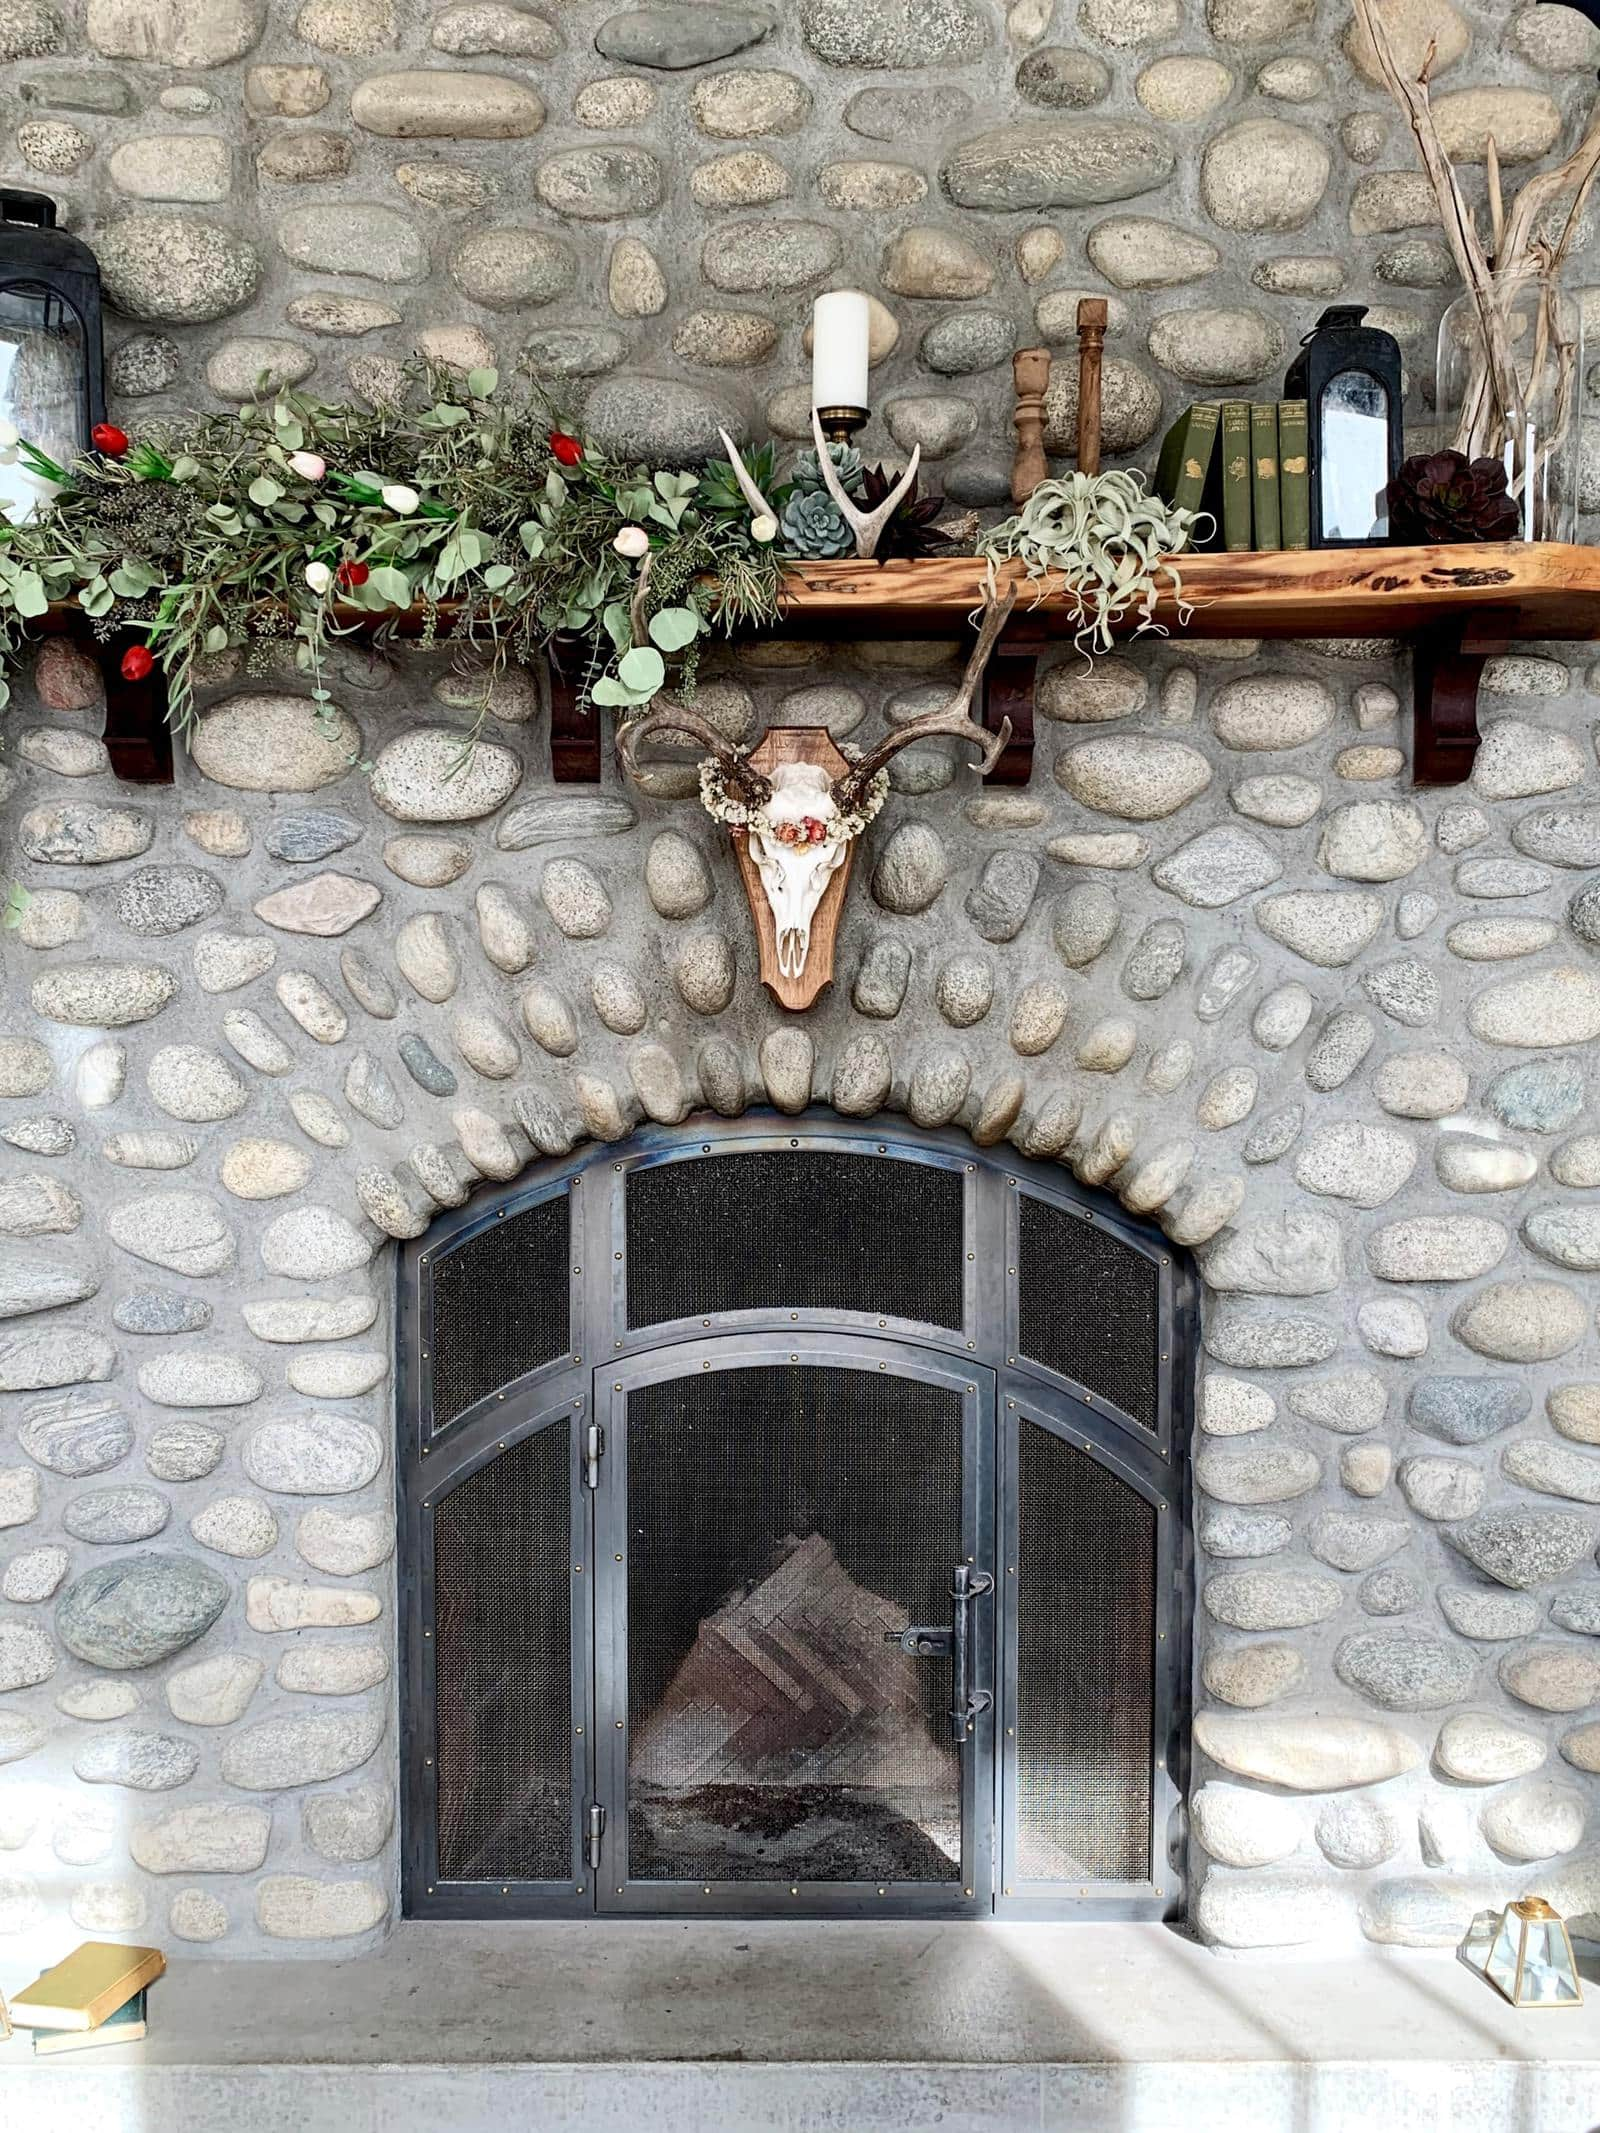 Rustic and Whimsical Mantle Idea